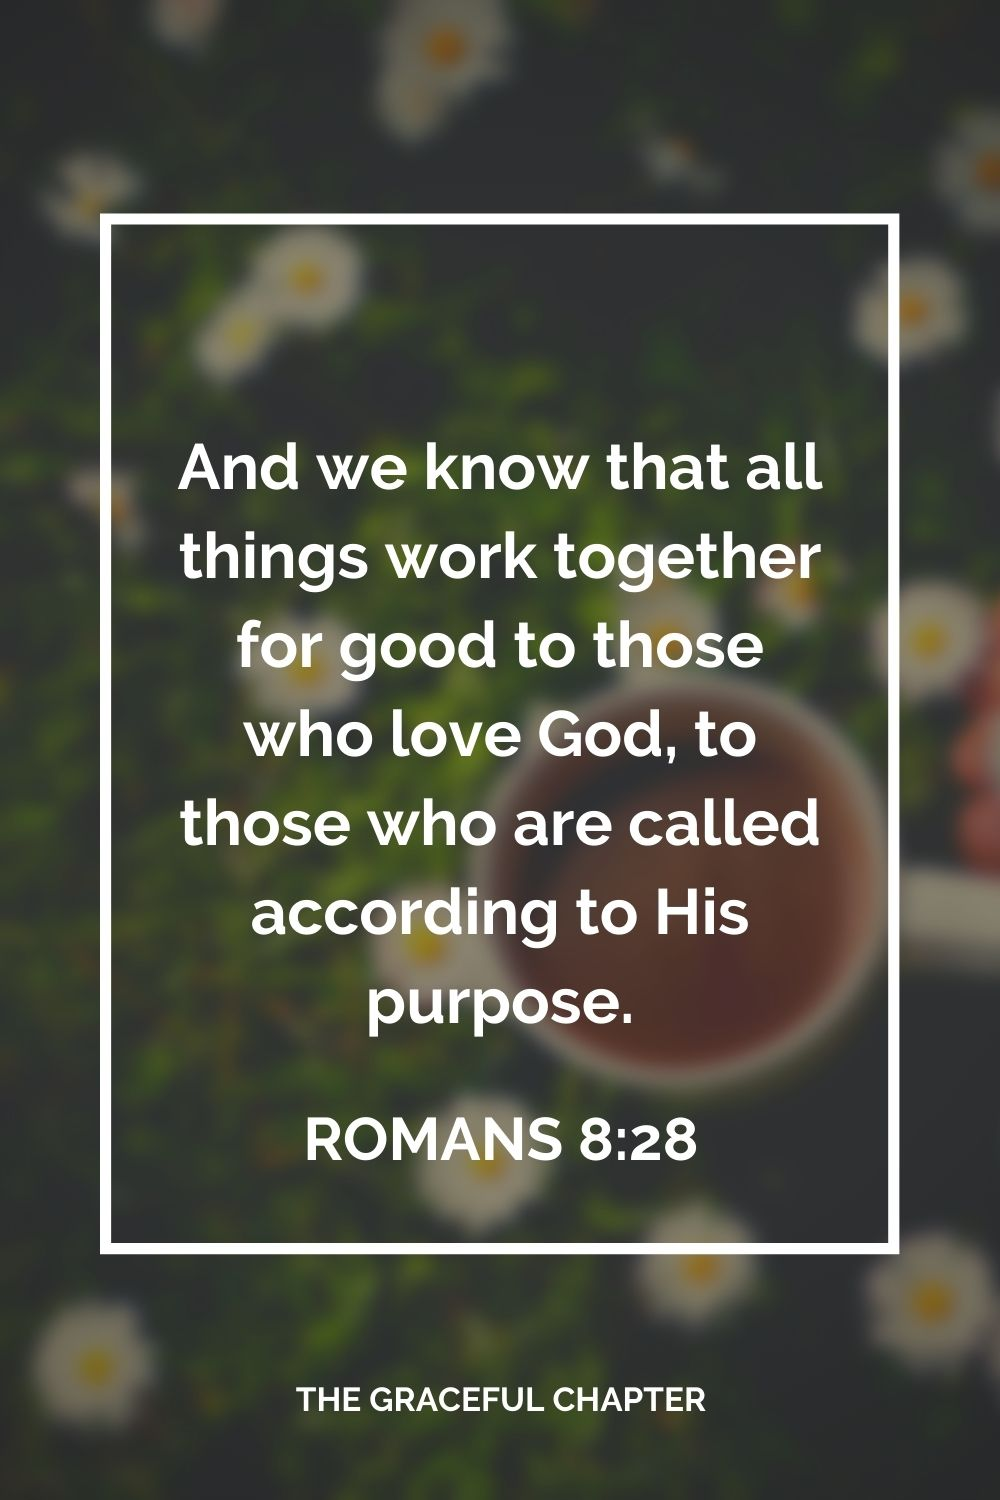 And we know that all things work together for good to those who love God, to those who are called according to His purpose. Romans 8:28